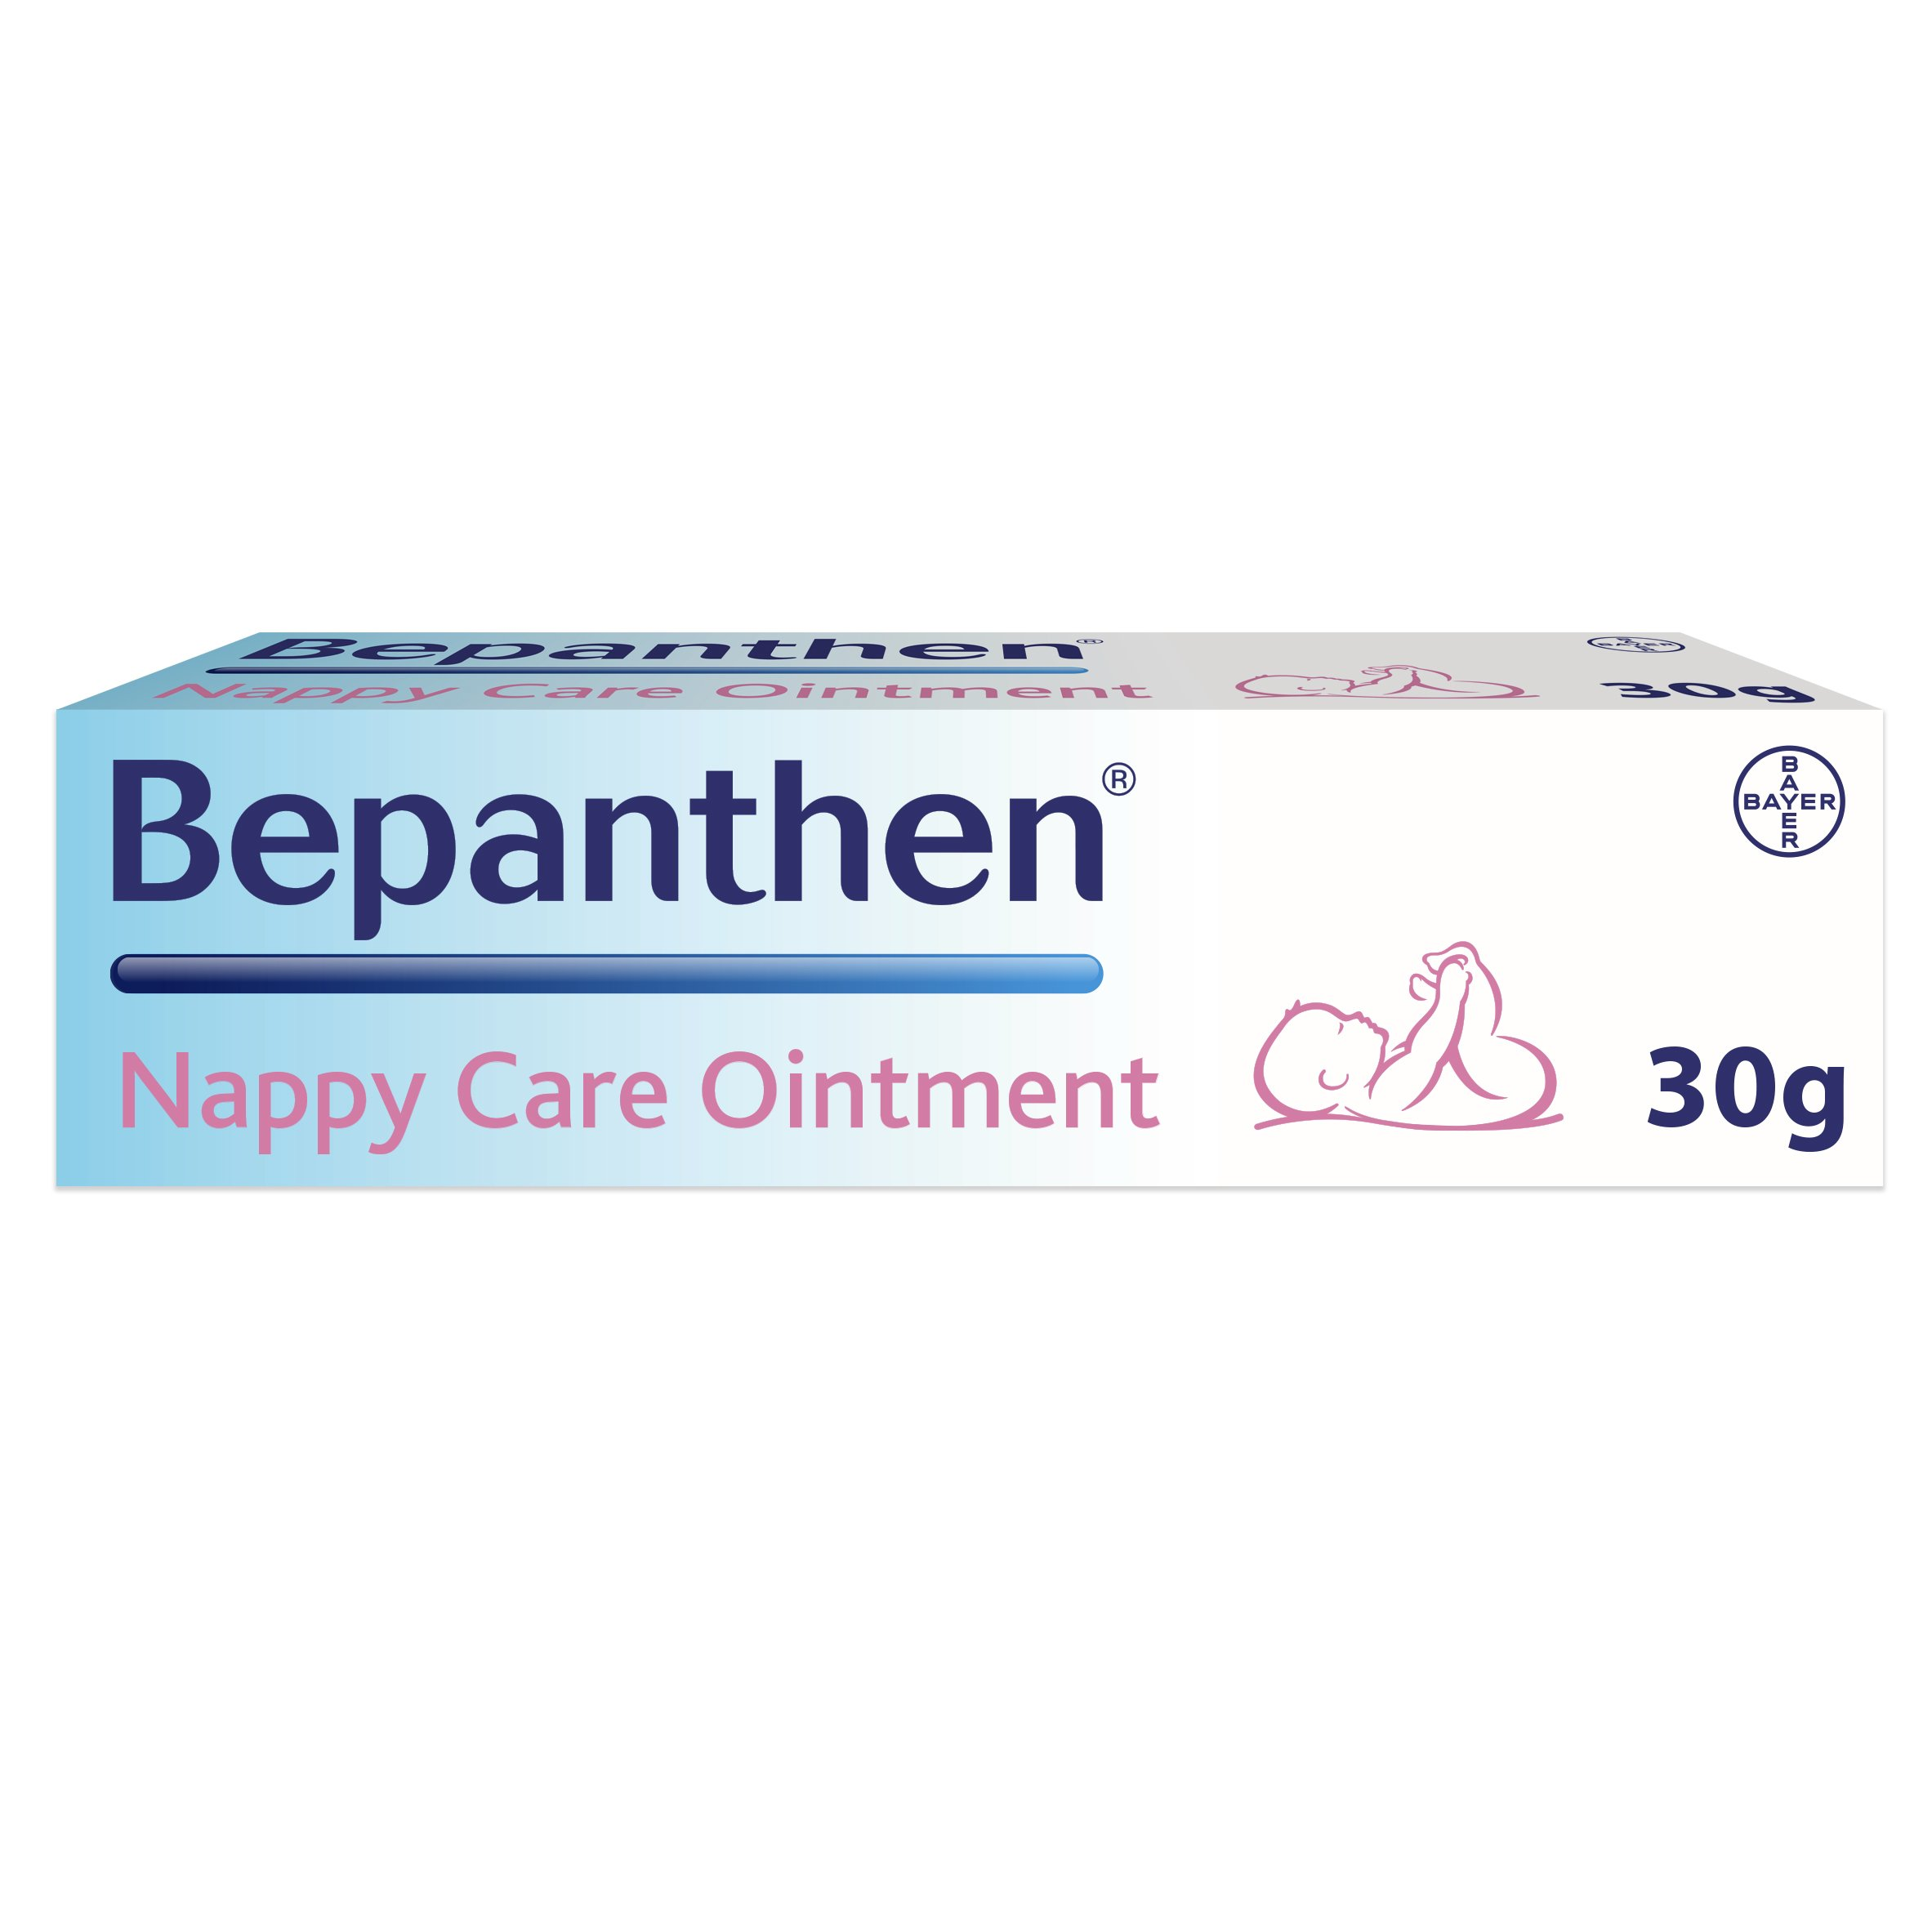 Bepanthen Nappy Care Ointment 5 Percent, 30 g